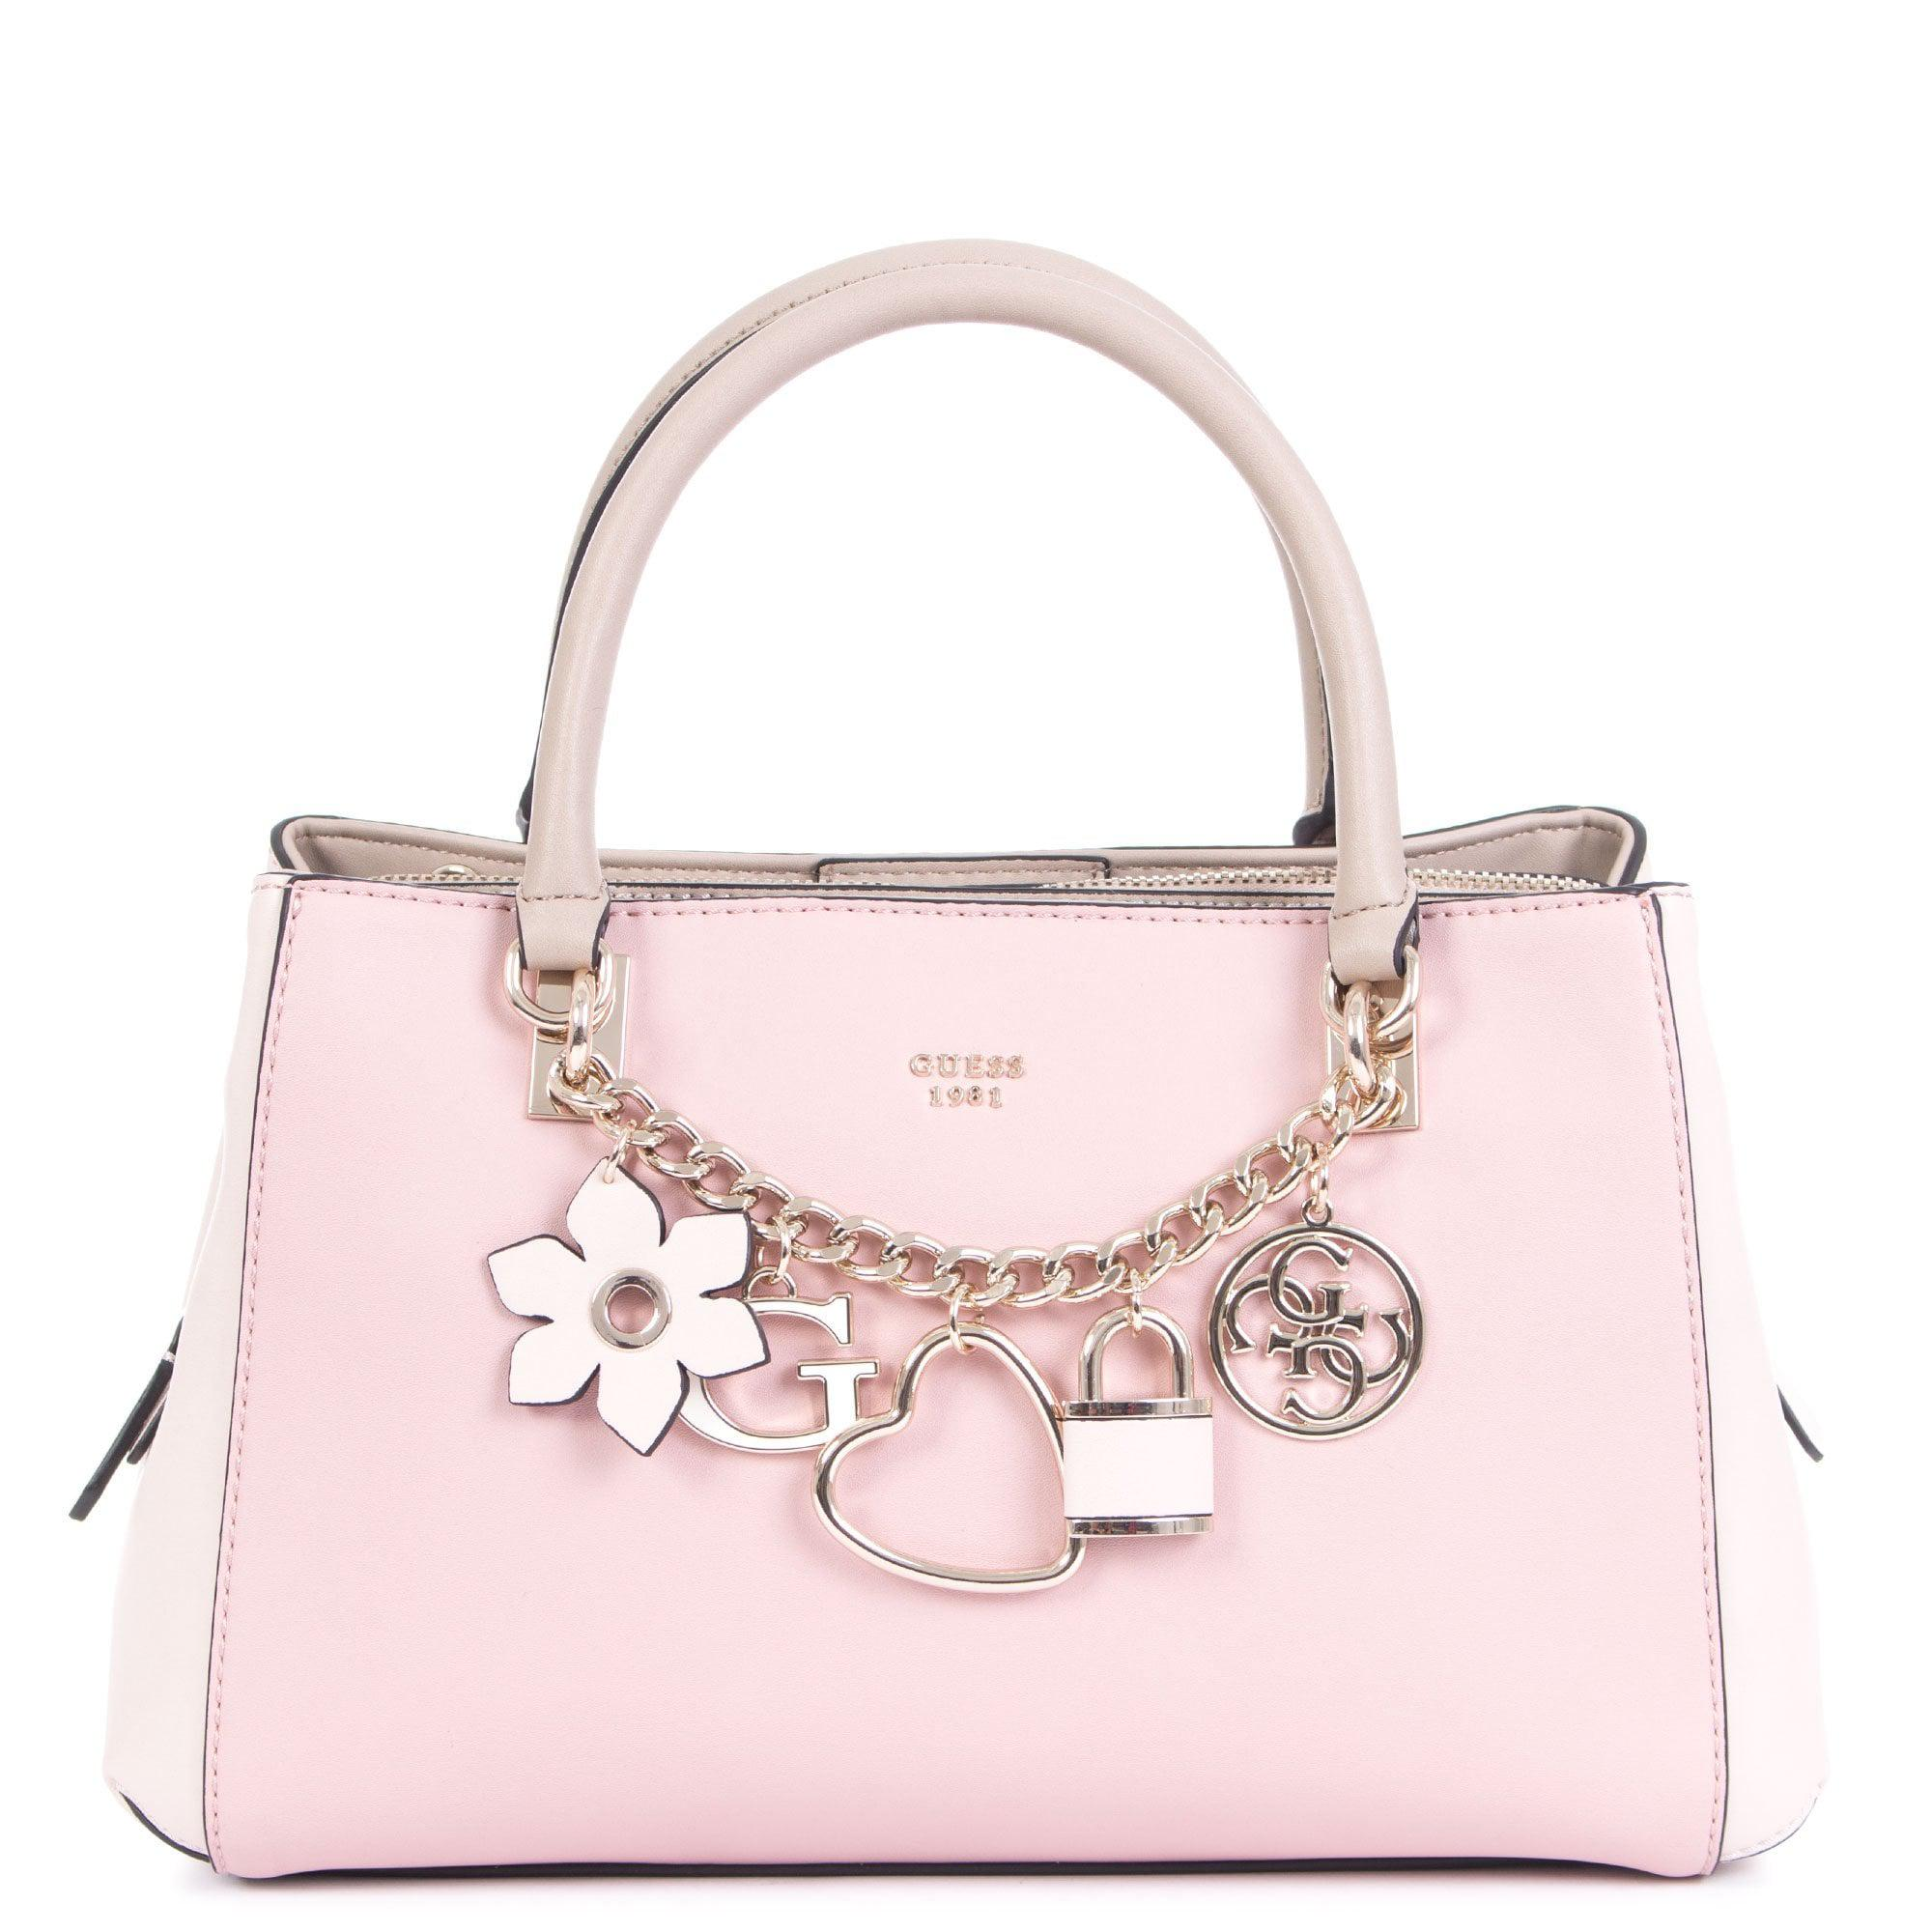 810a5e6fb7 Guess pink ombre purse best image ccdbb jpg 2000x2000 Pink guess hand bag